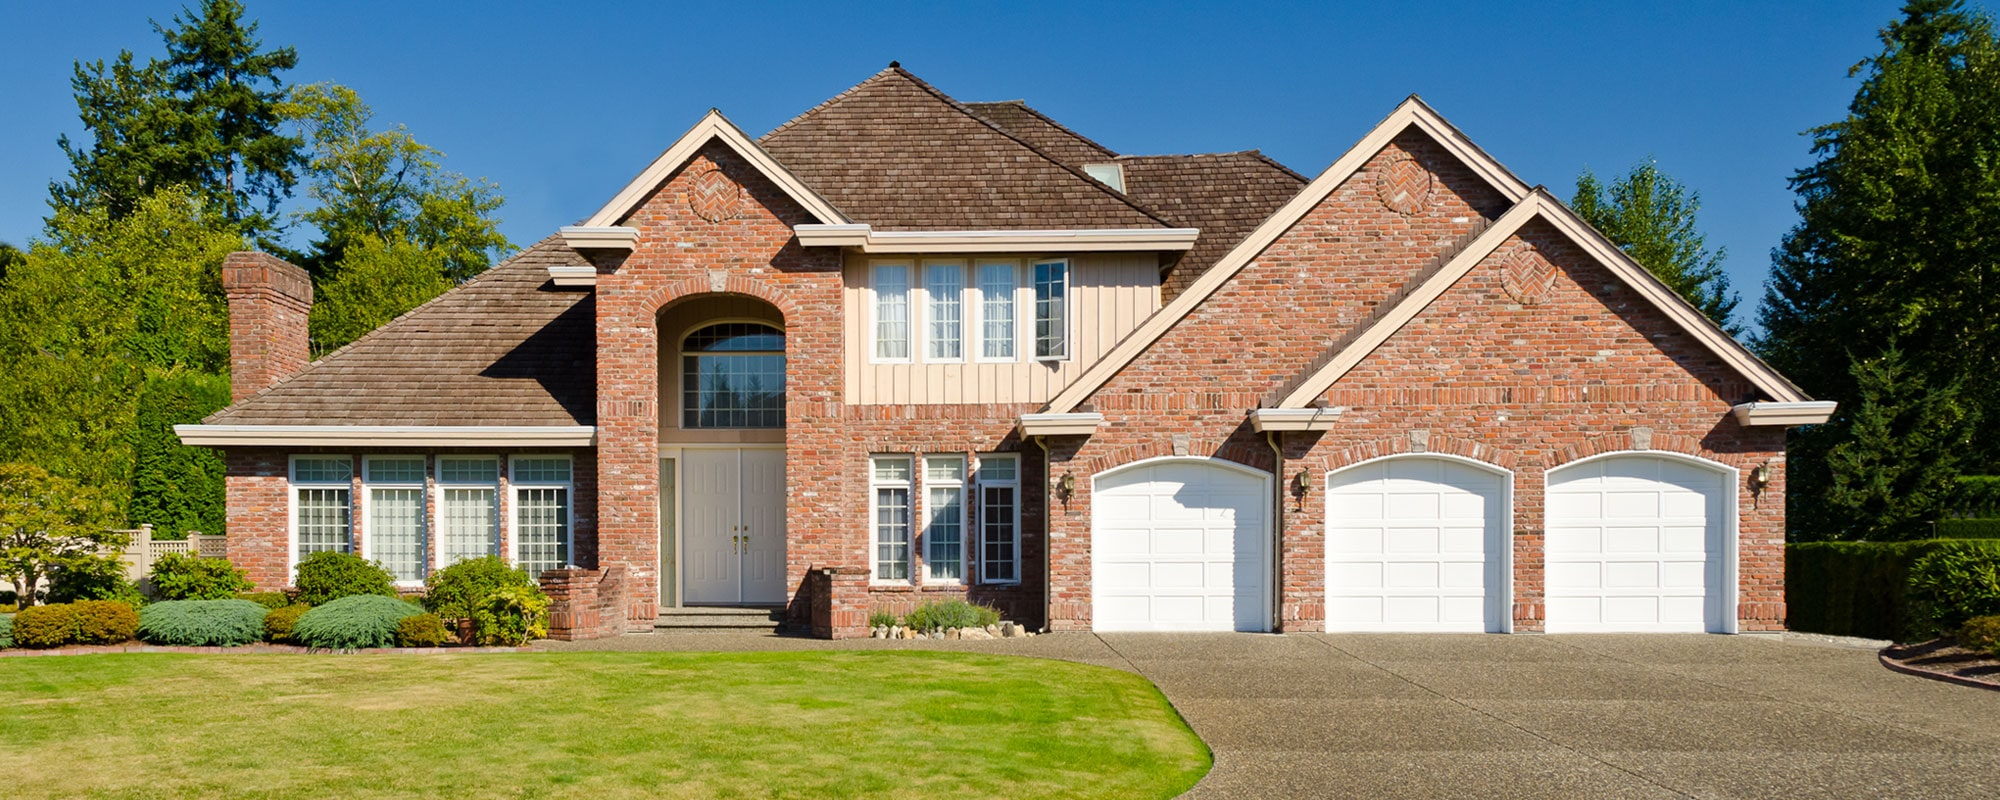 Find Out What Your Home is Worth: Get a Free Home Evaluation!